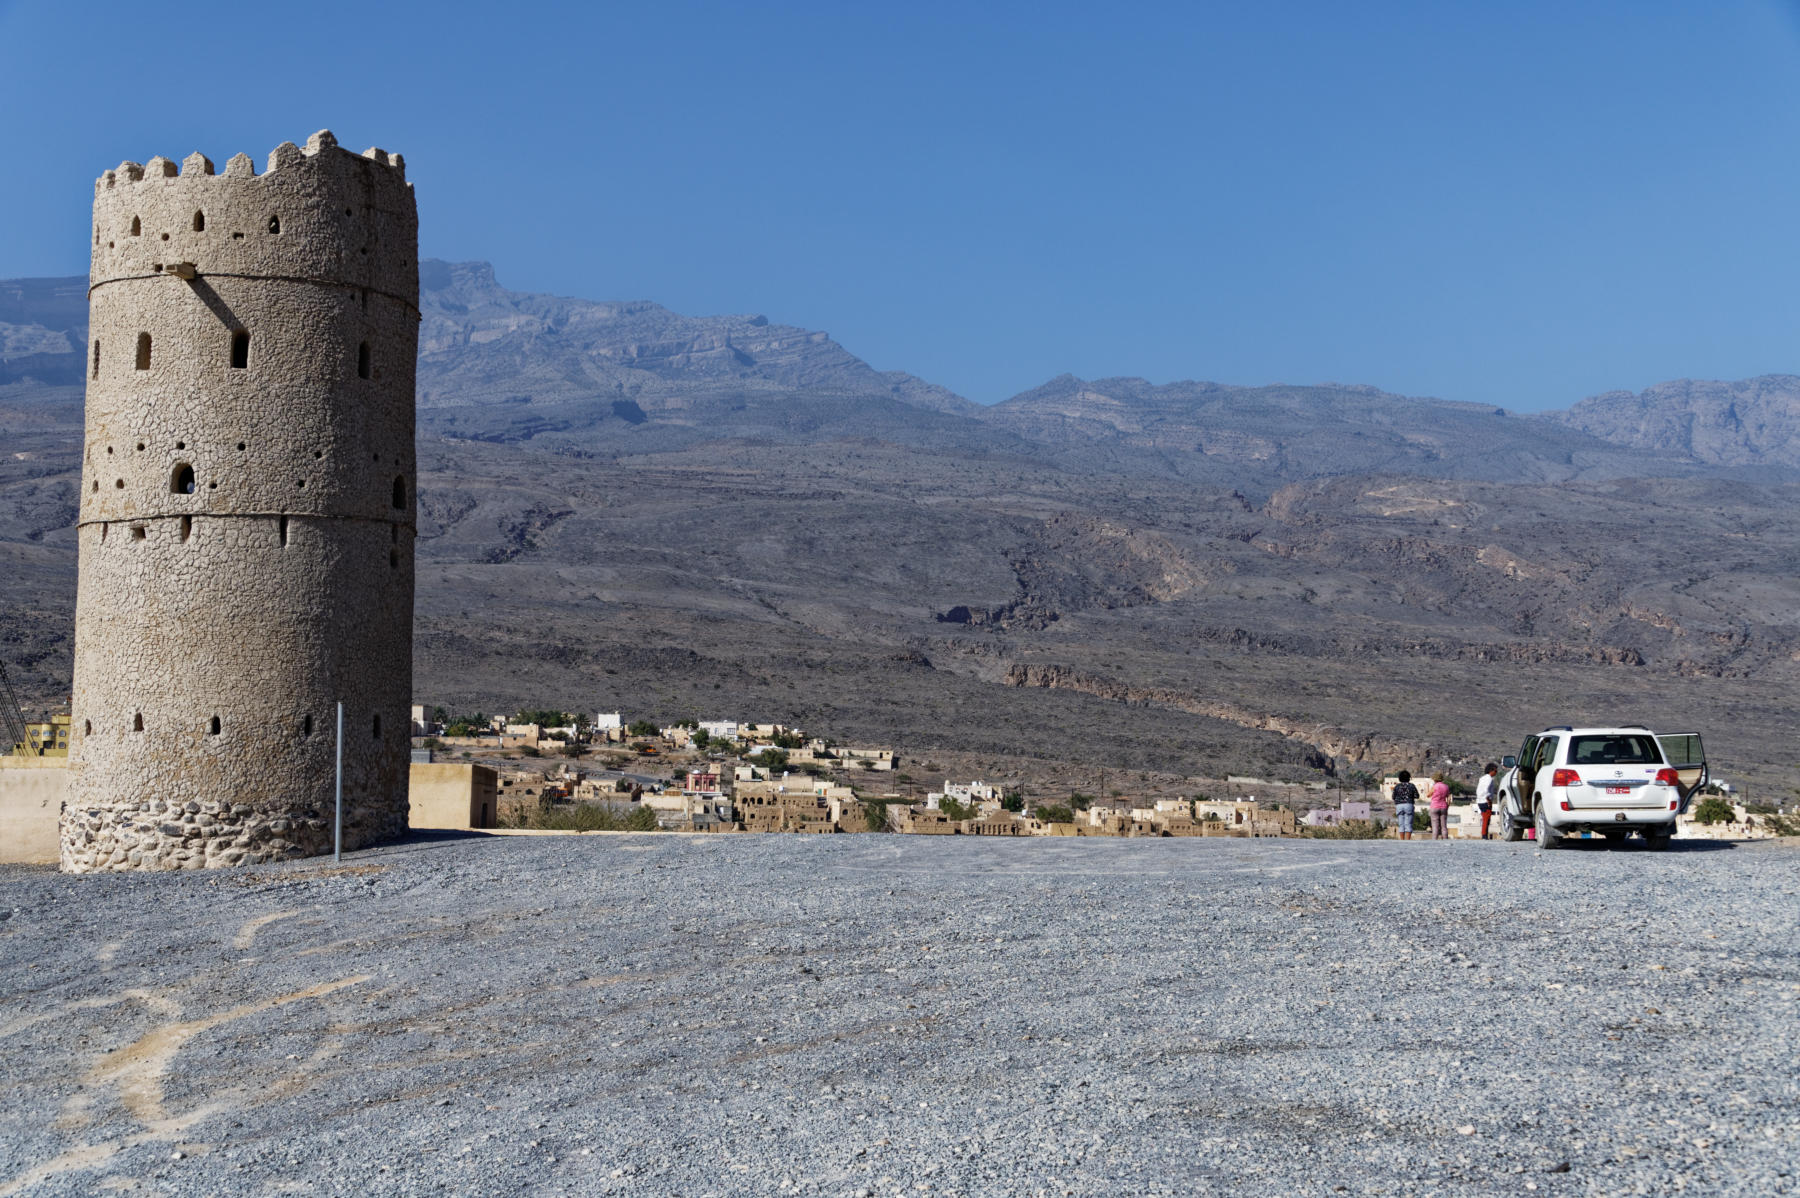 Al Hamra's Watch Tower. Oman